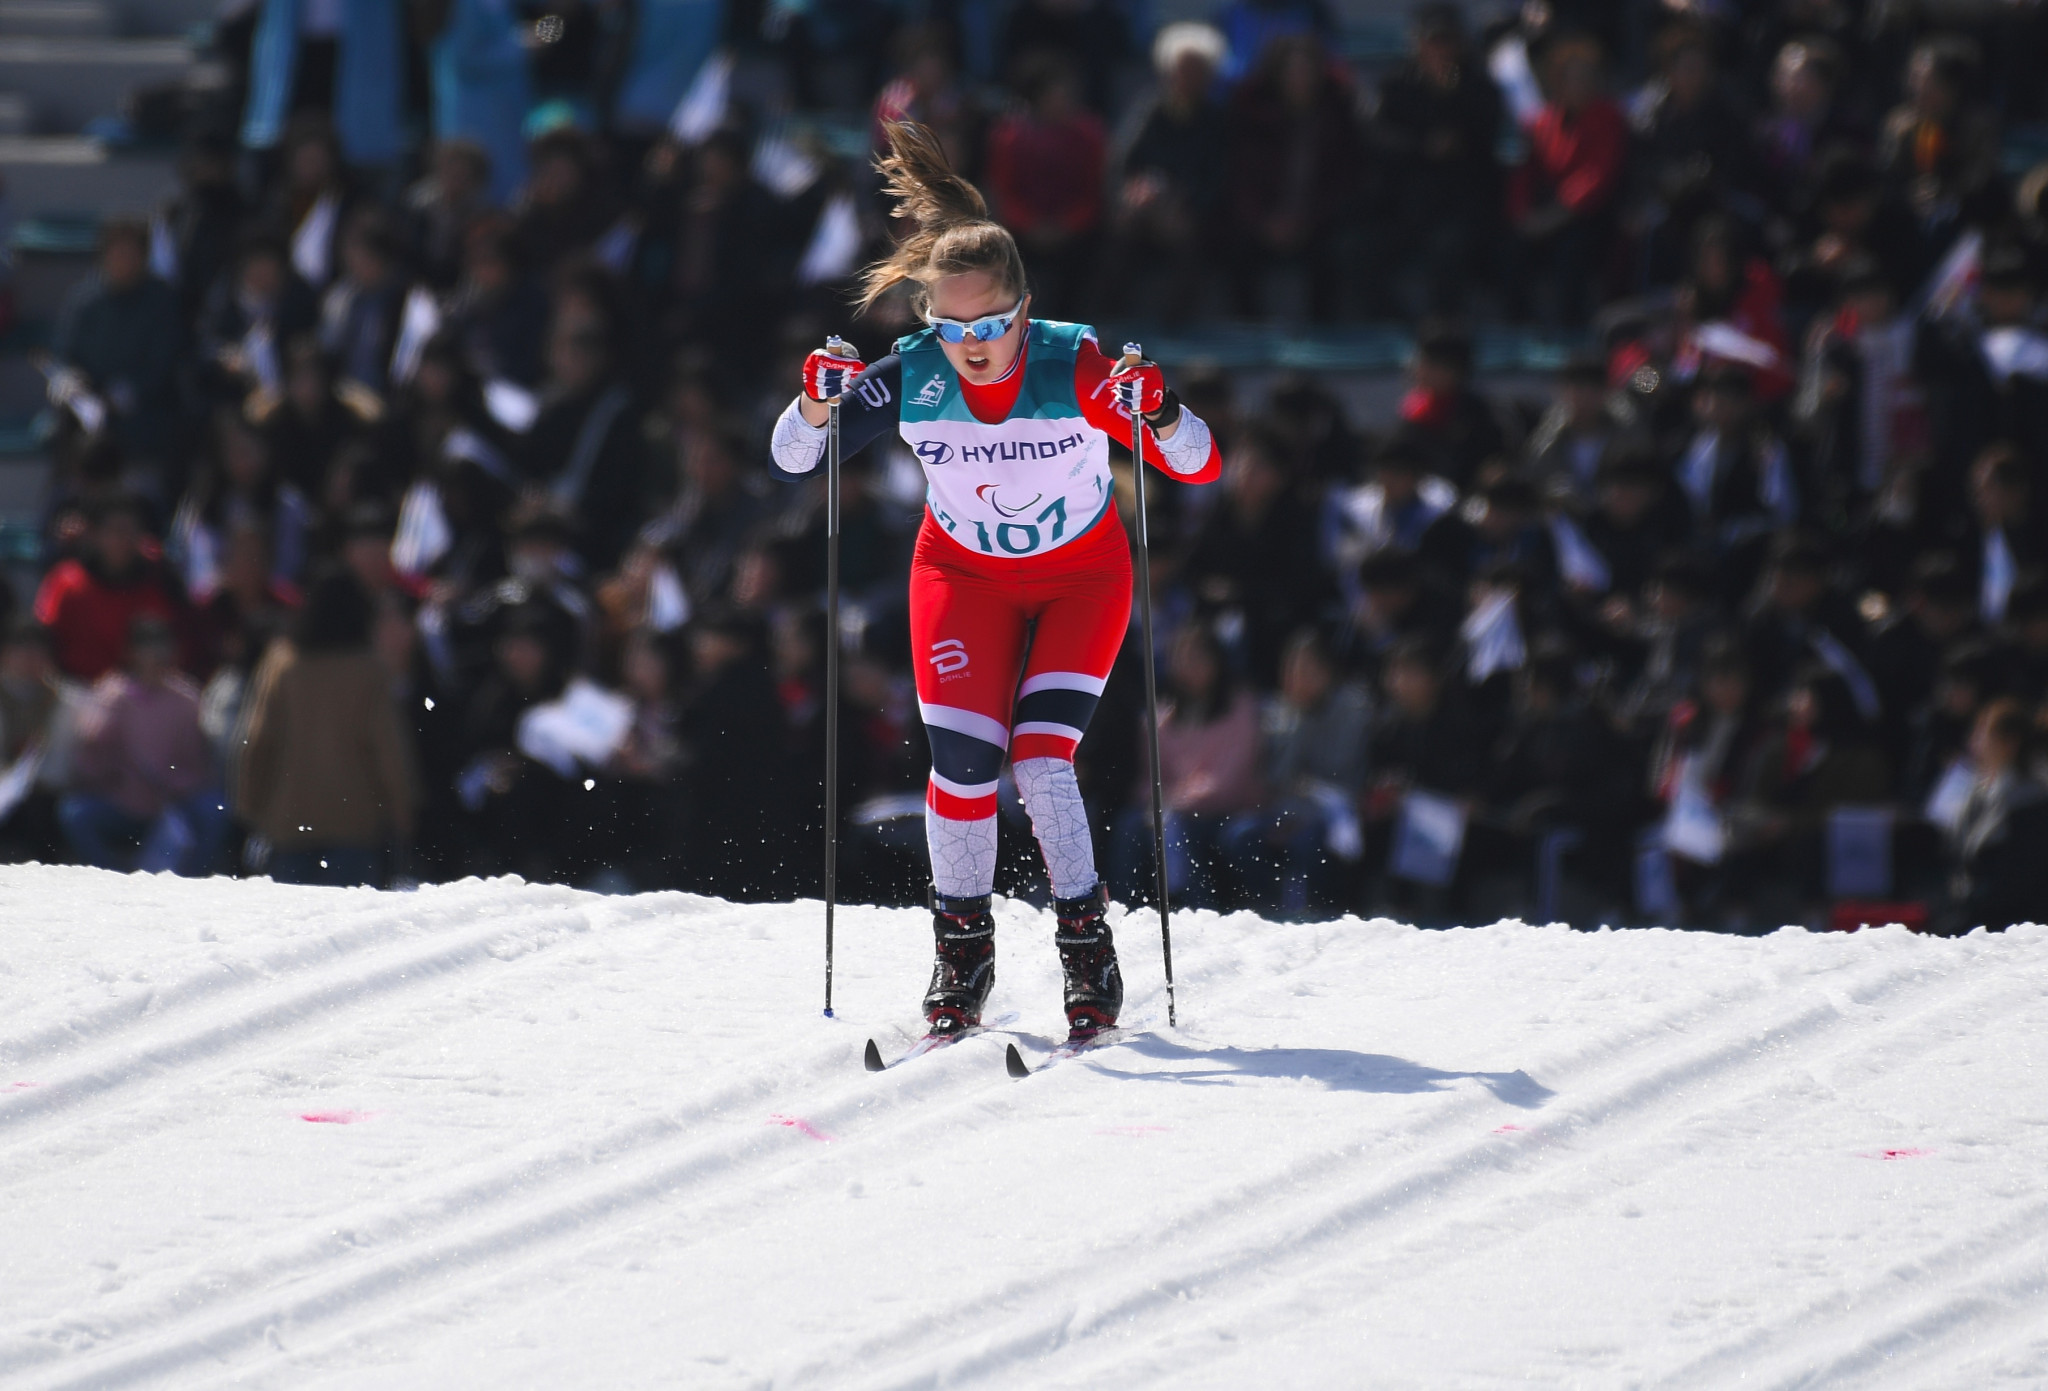 Norwegian cross-country skier Vilde Nilsen is also in contention for the award ©Getty Images